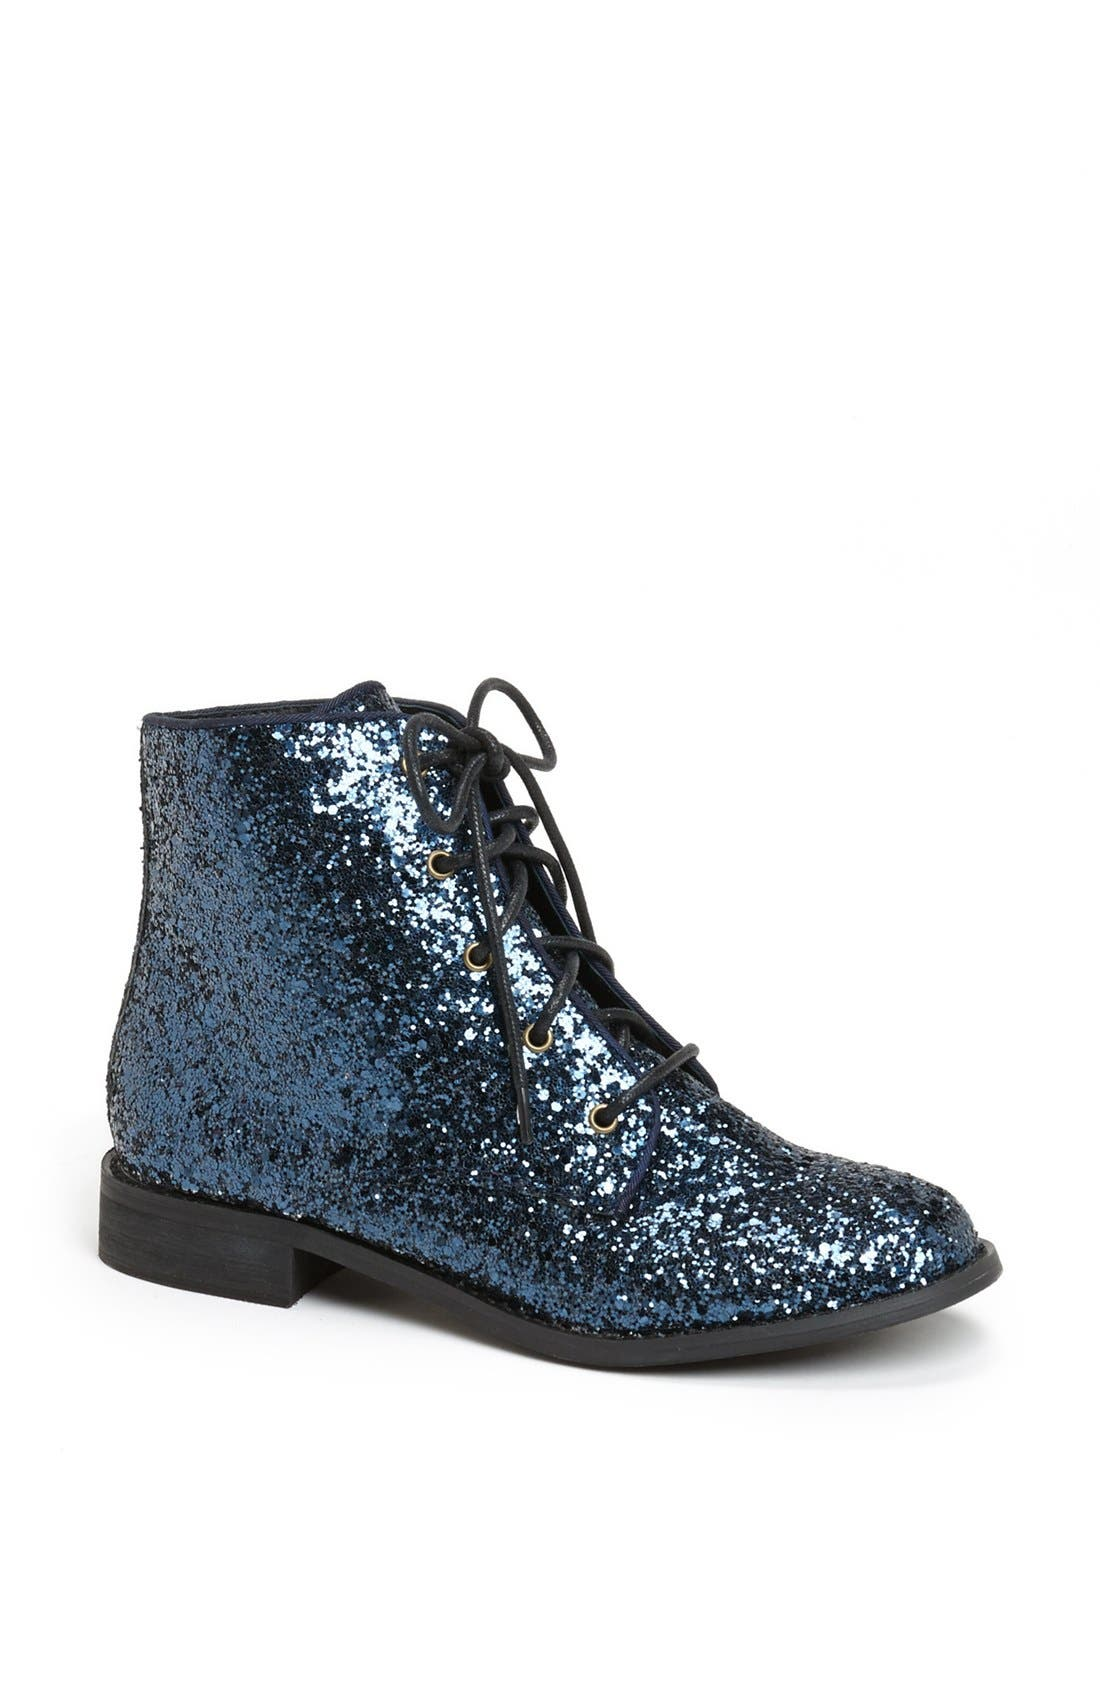 Main Image - Shellys London 'Kmenta' Glitter Boot